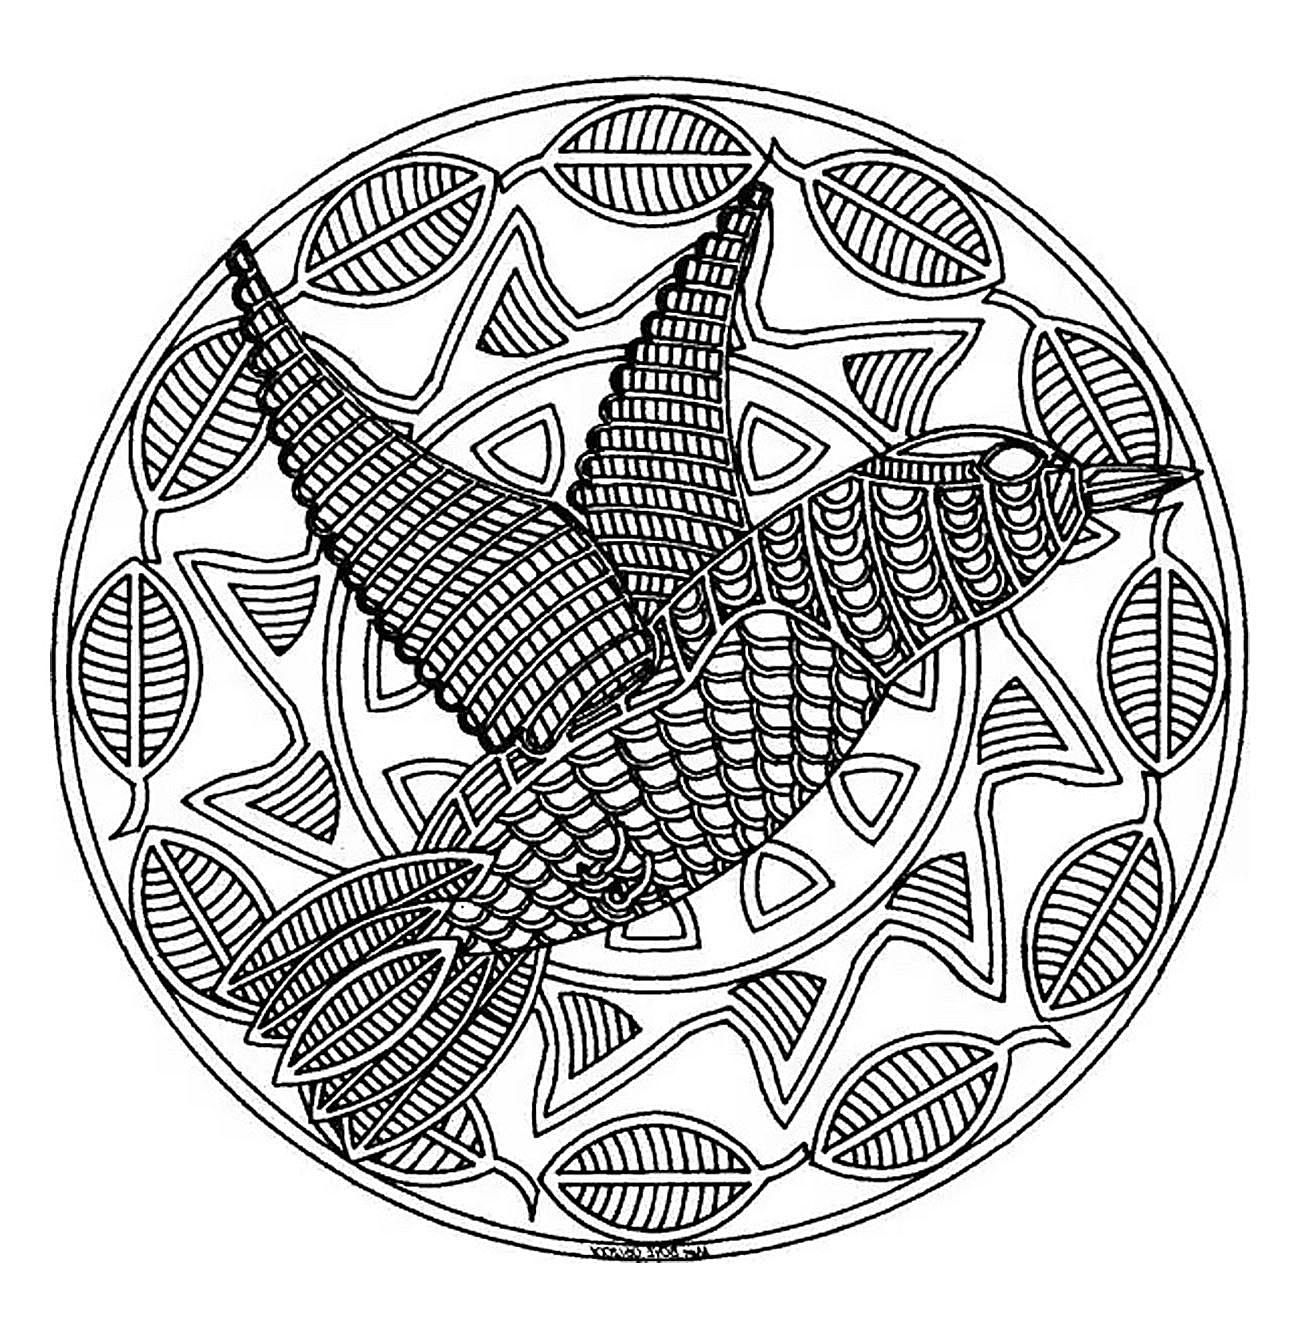 843 free mandala coloring pages for adults - Color For Free